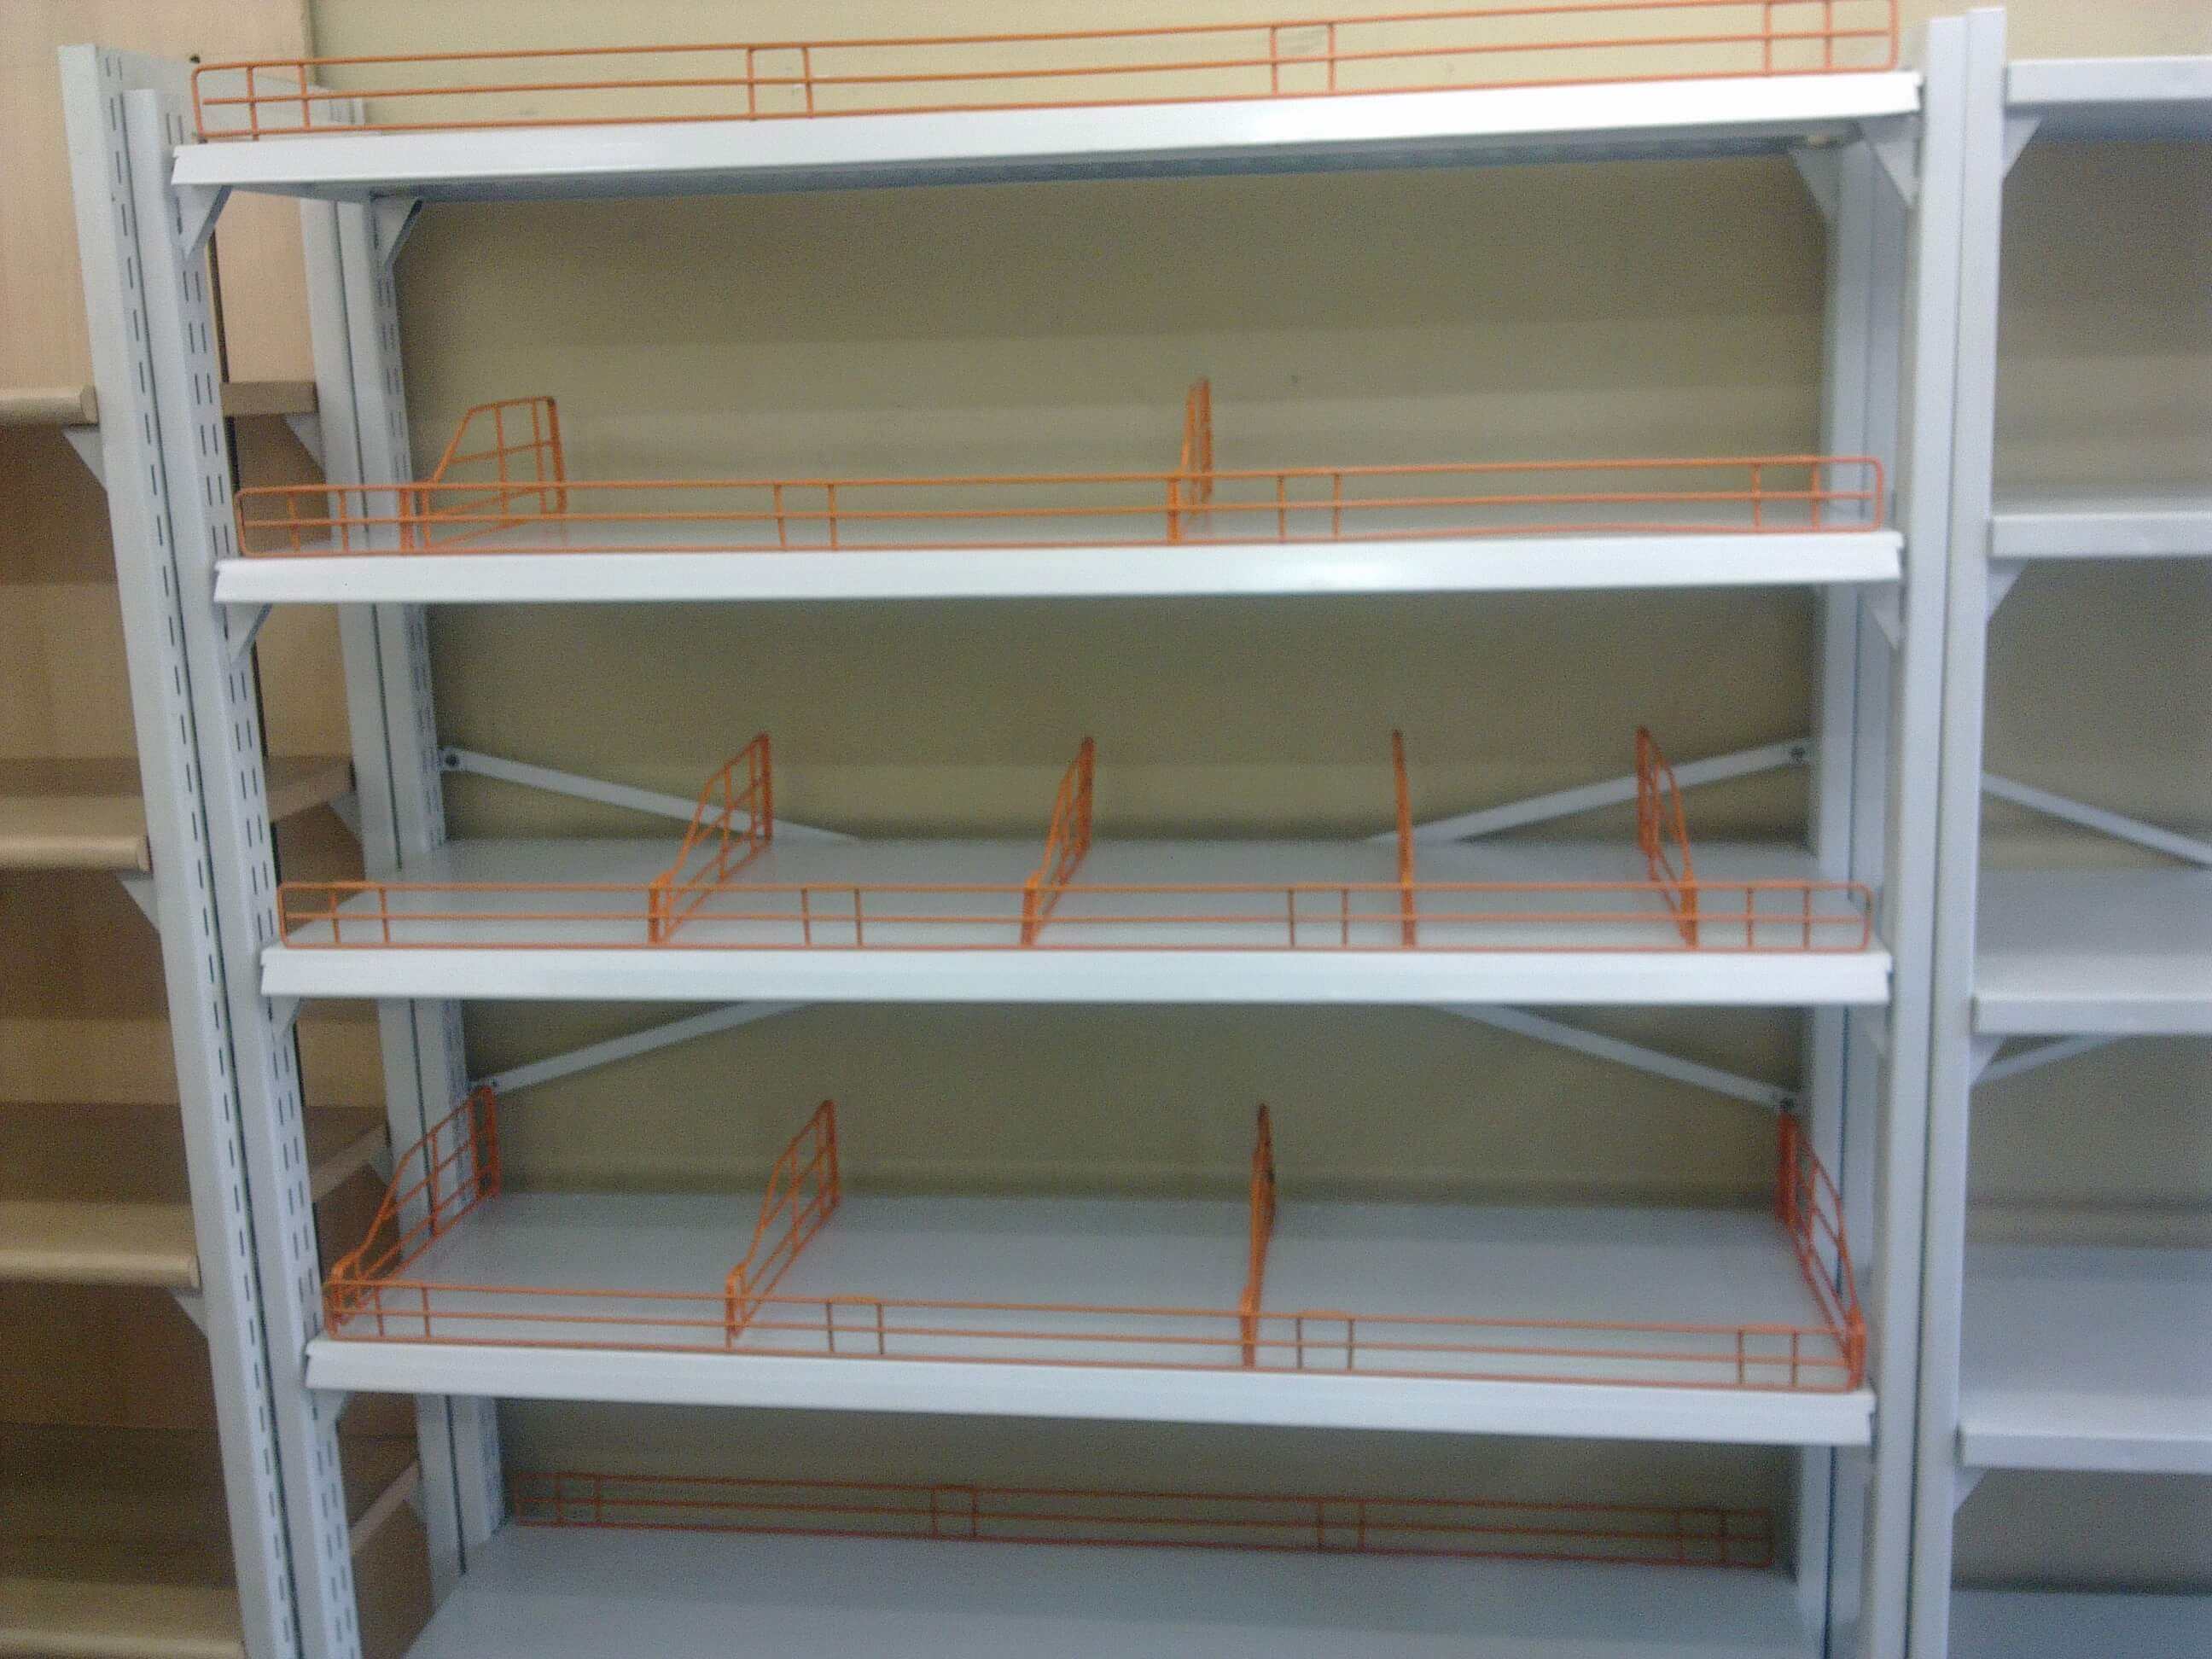 storage wholesaler medium racks slotted supplier cantilever duty manufacturer angle housing htm ware india rack equipments light